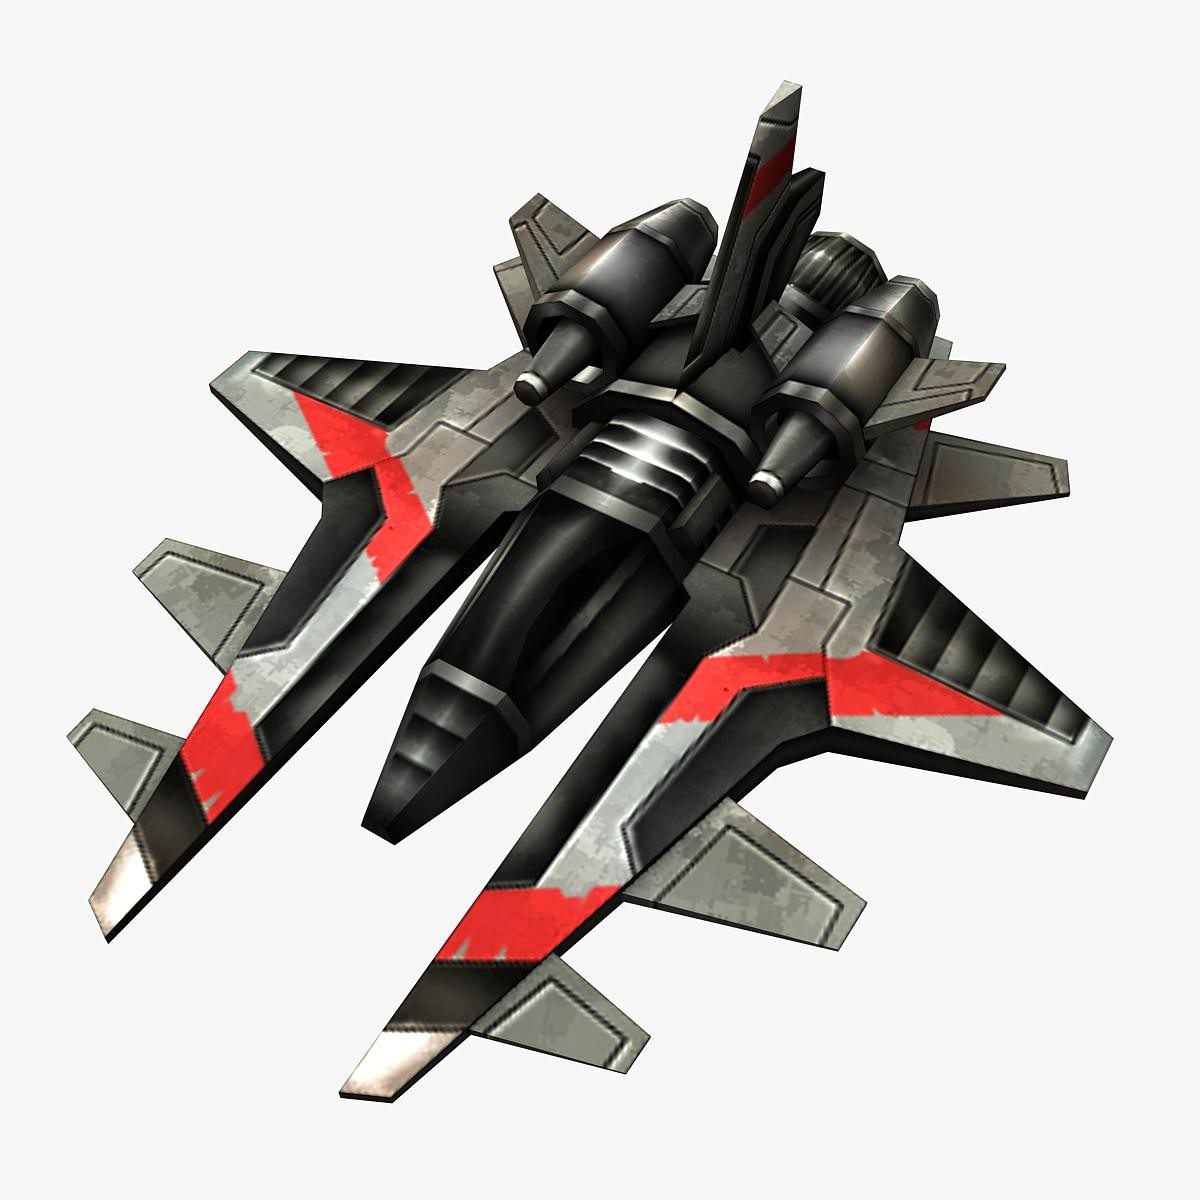 spaceship_fighter_1_preview_0.jpg